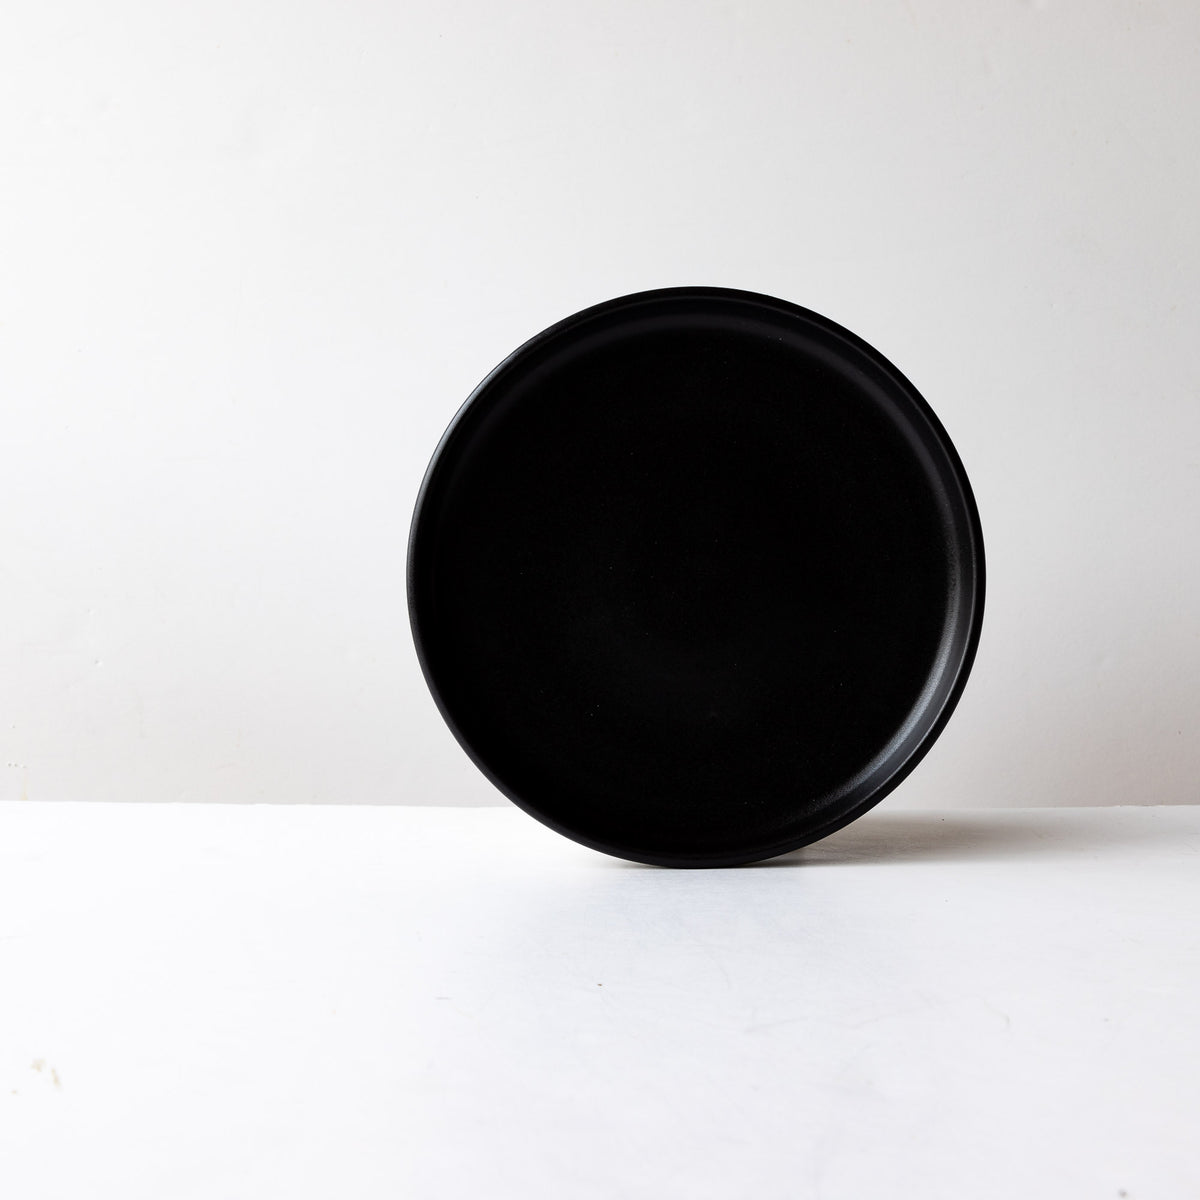 Front View - Black Satin Glaze Hand Thrown Medium Porcelain Plate - Sold by Chic & Basta